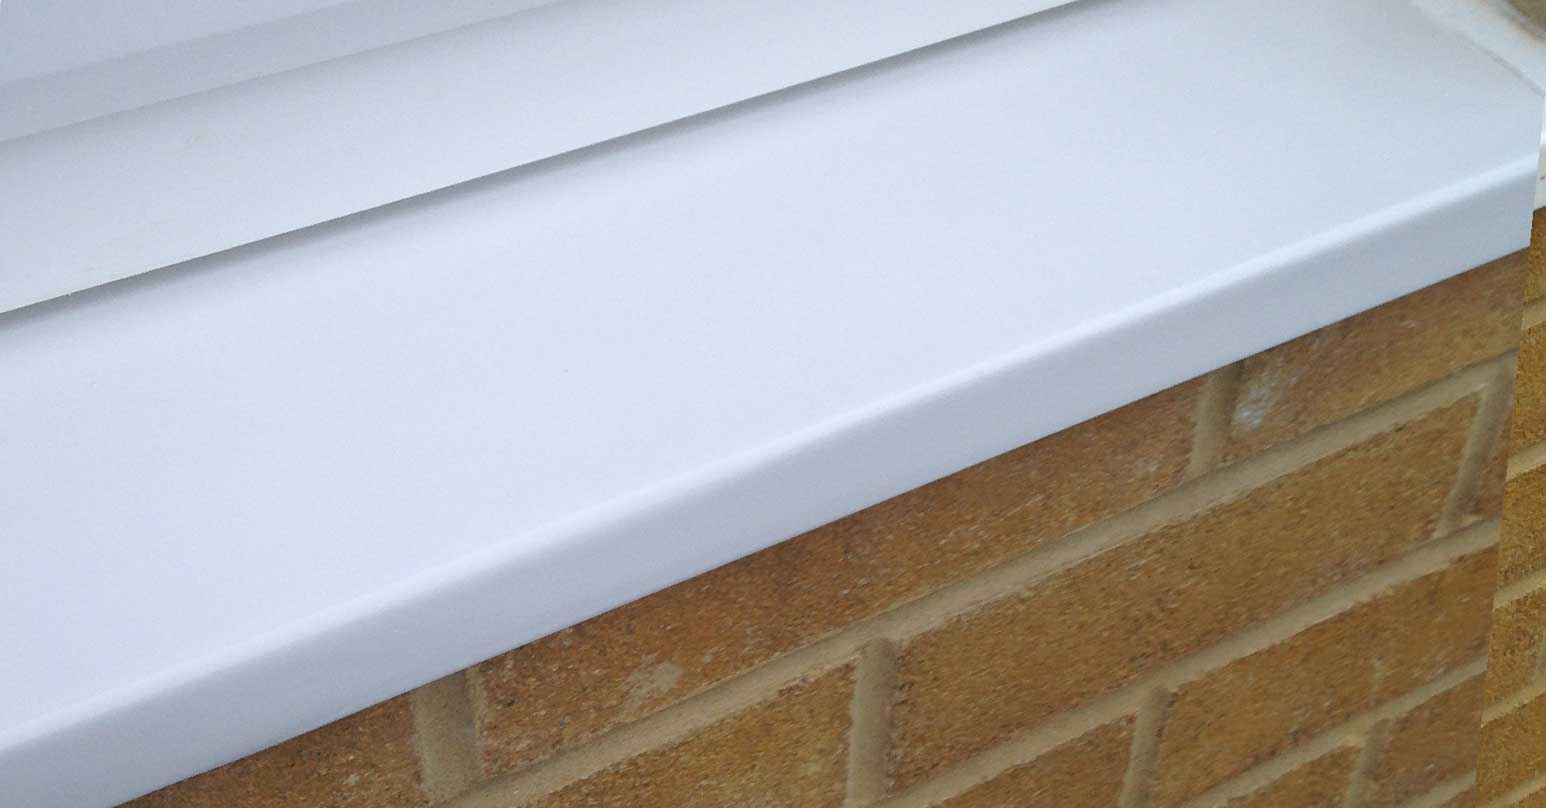 Repair to cracked UPVC sill